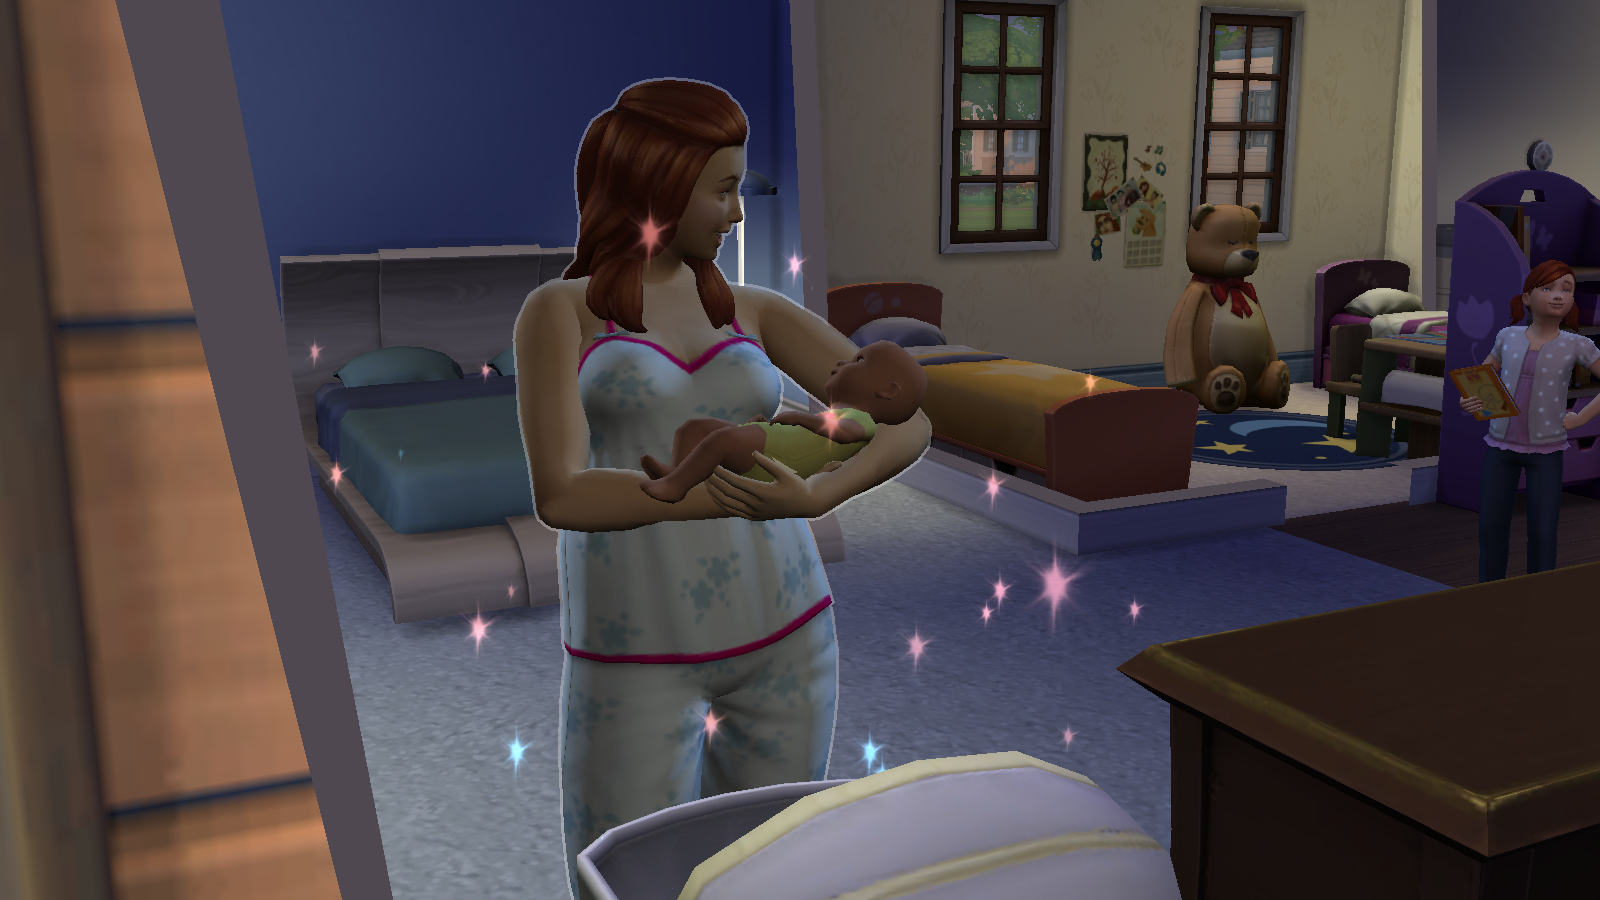 The First Two Trimesters Lasts Twentyfour Hours Each With The Bump Growing  Every Day! It Wouldn't Be Unusual For Your Sim To Be A Little Heavier After  She